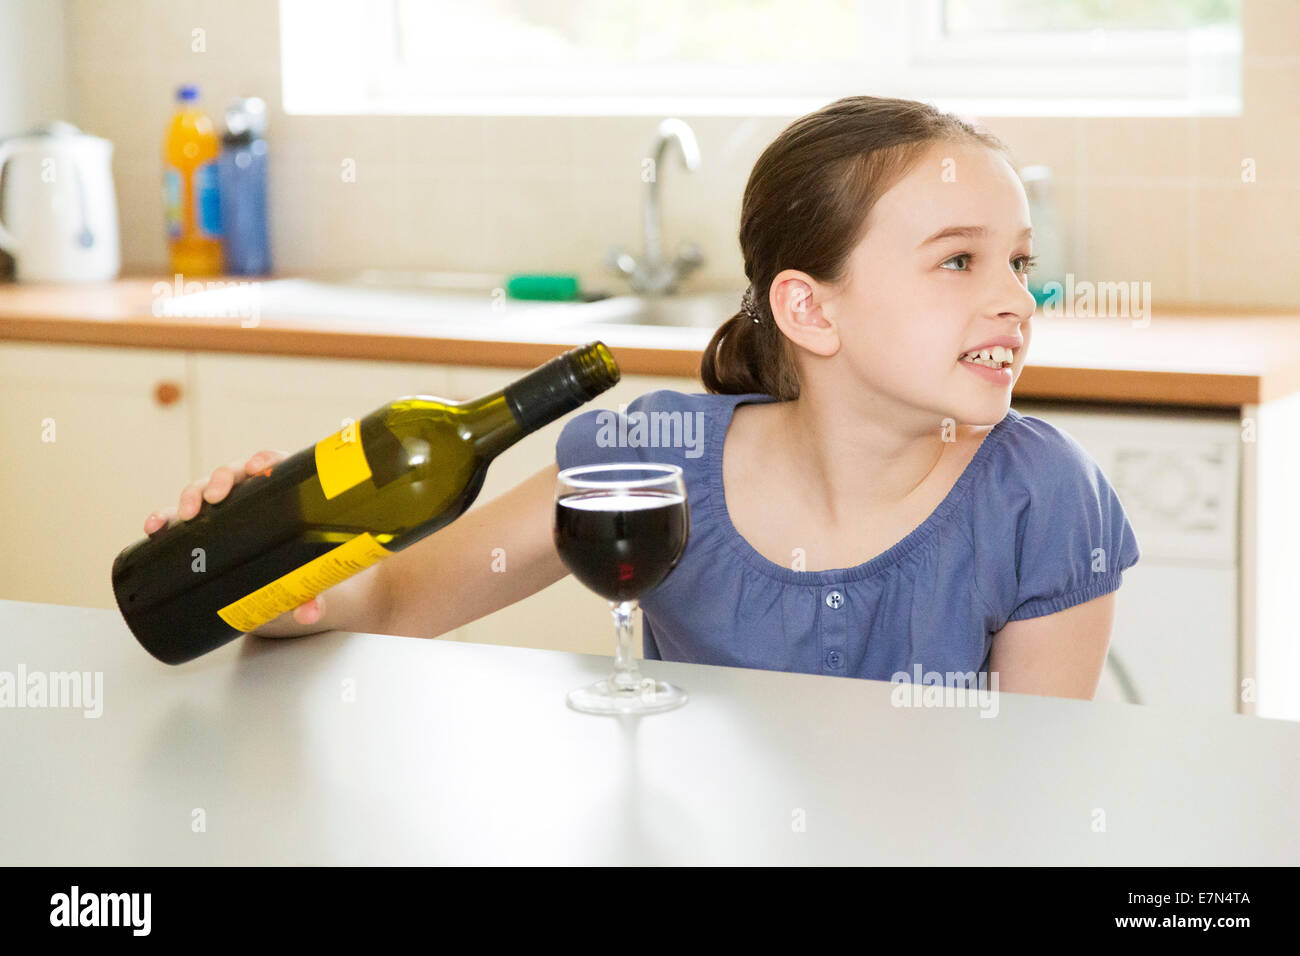 disadvantages of underage drinking Under-age drinking laws: legal in most states in us the exaggeration of underage drinking and of alcohol abuse tends to create a self-fulfilling prophesy the more young people believe heavy drinking occurs, the more heavily they tend to drink.